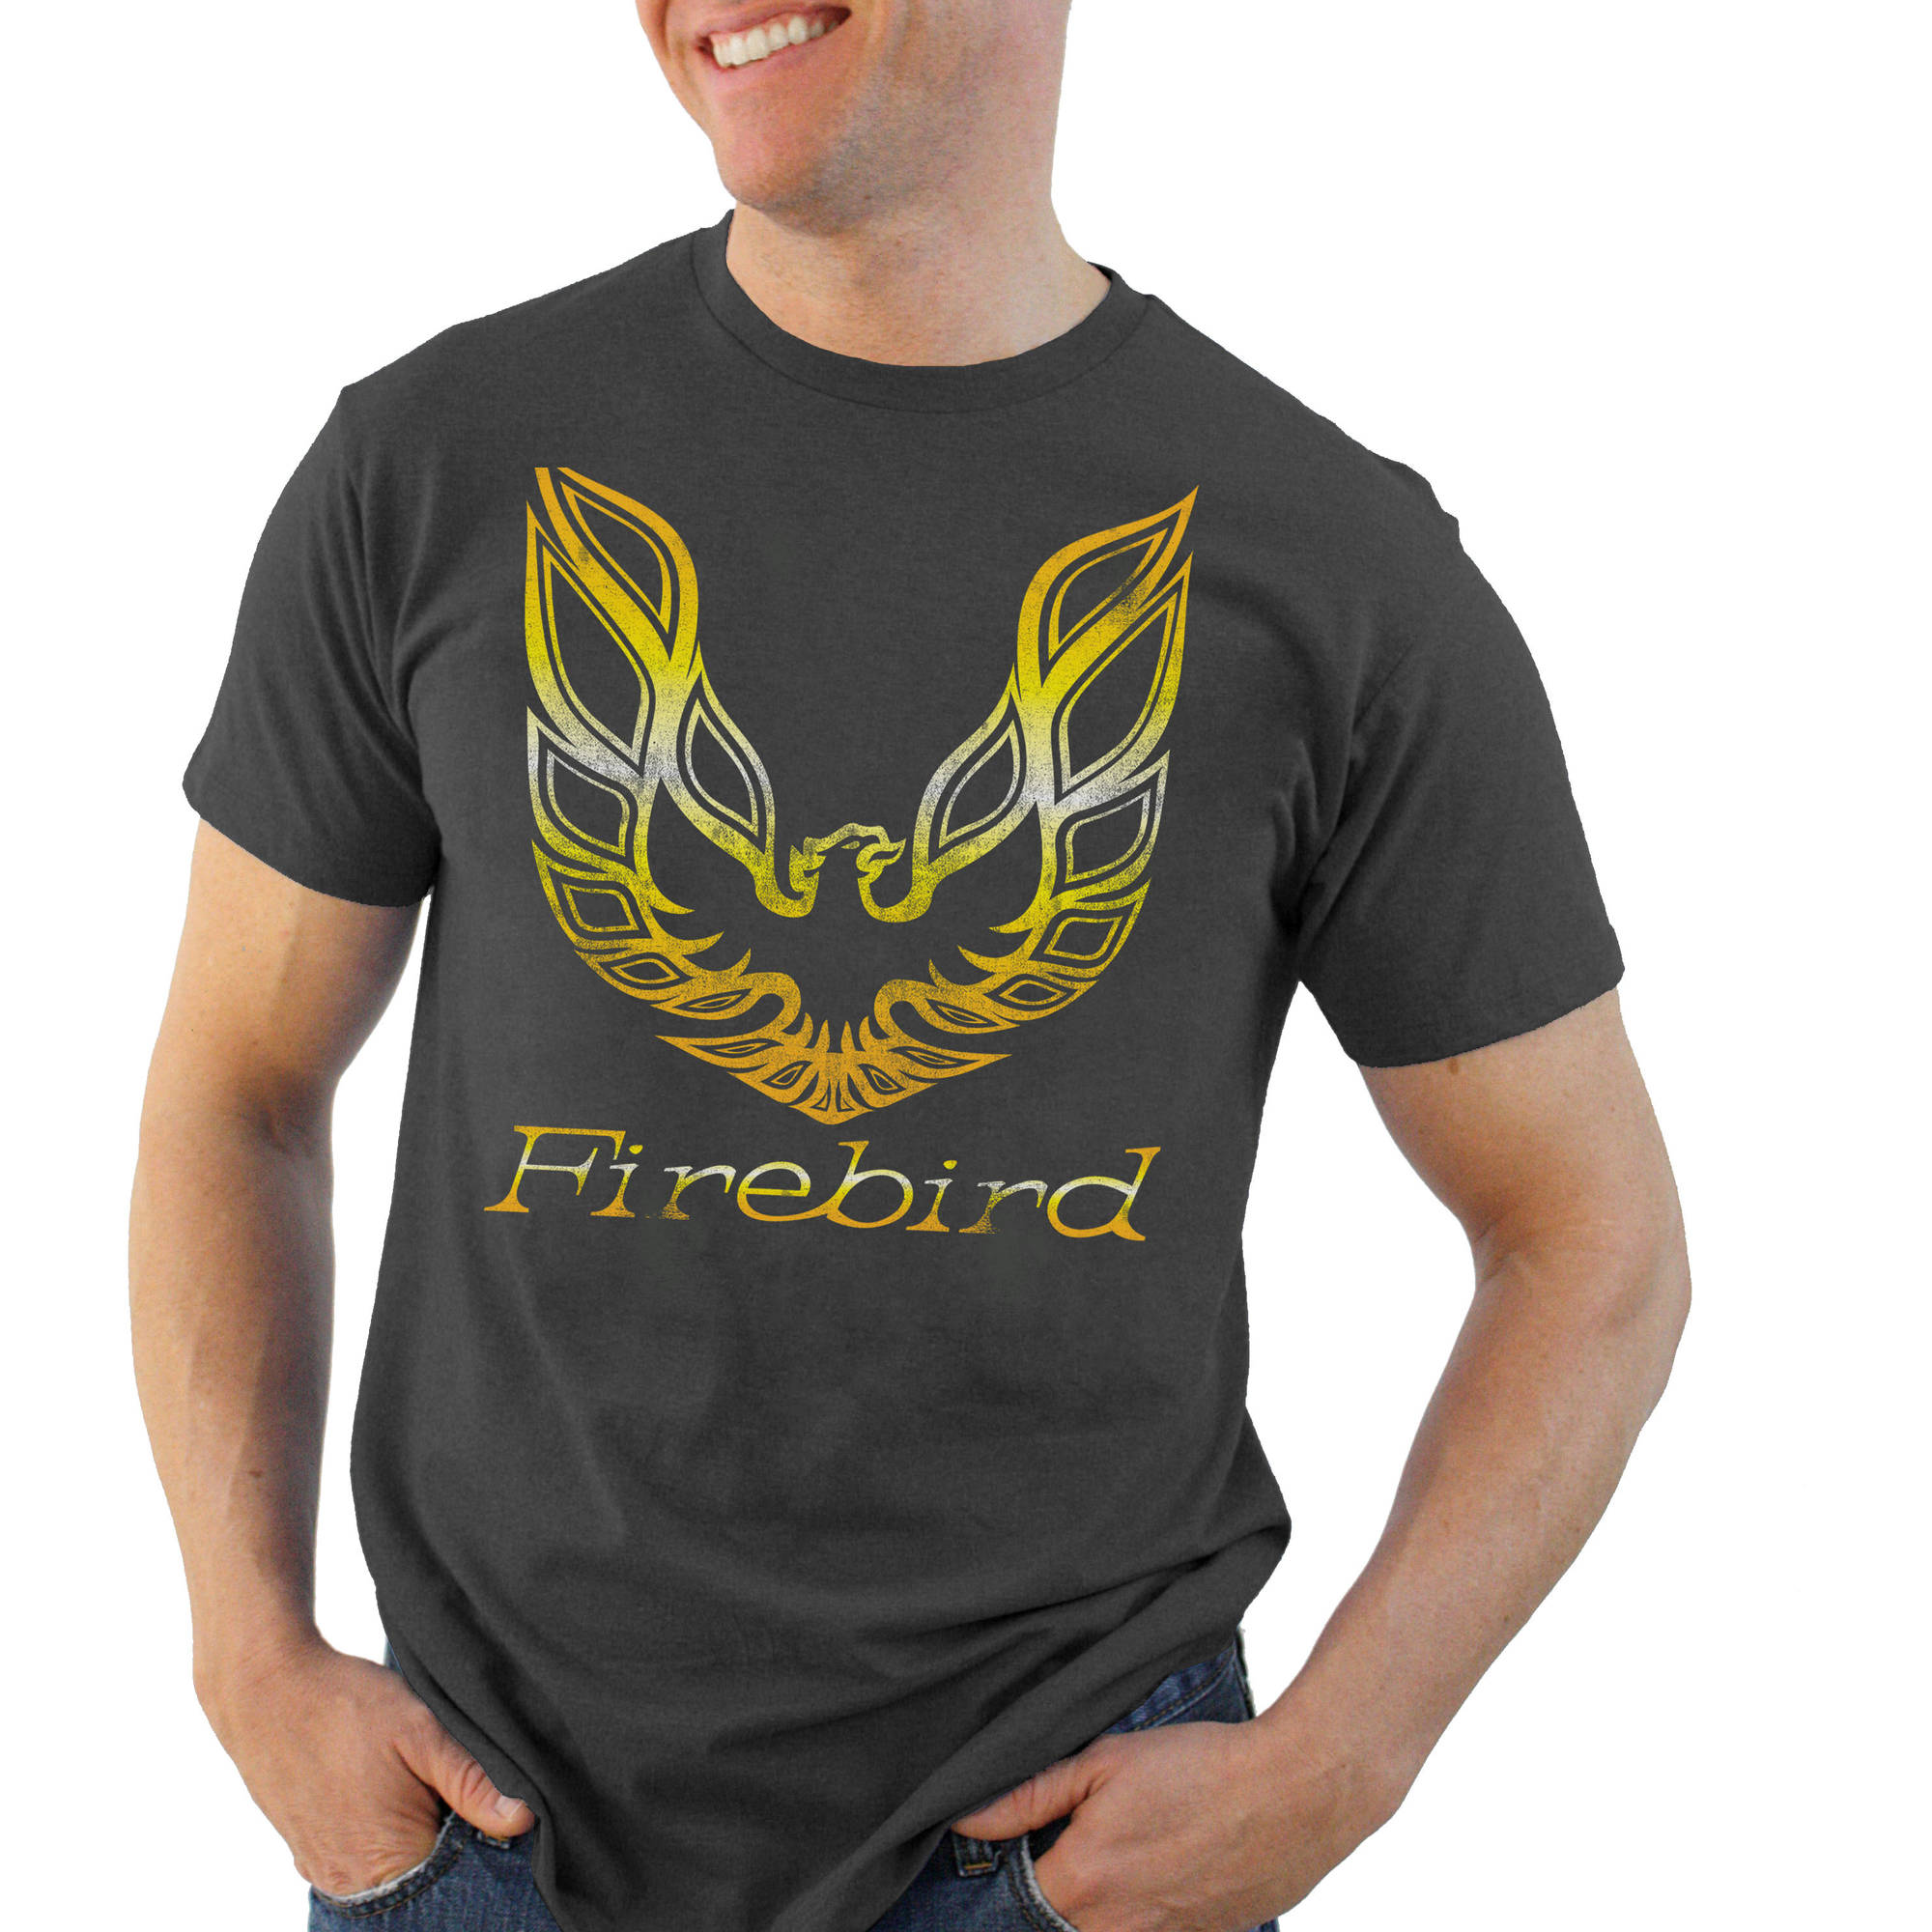 Pontiac Firebird Retro Logo Men's Graphic Tee